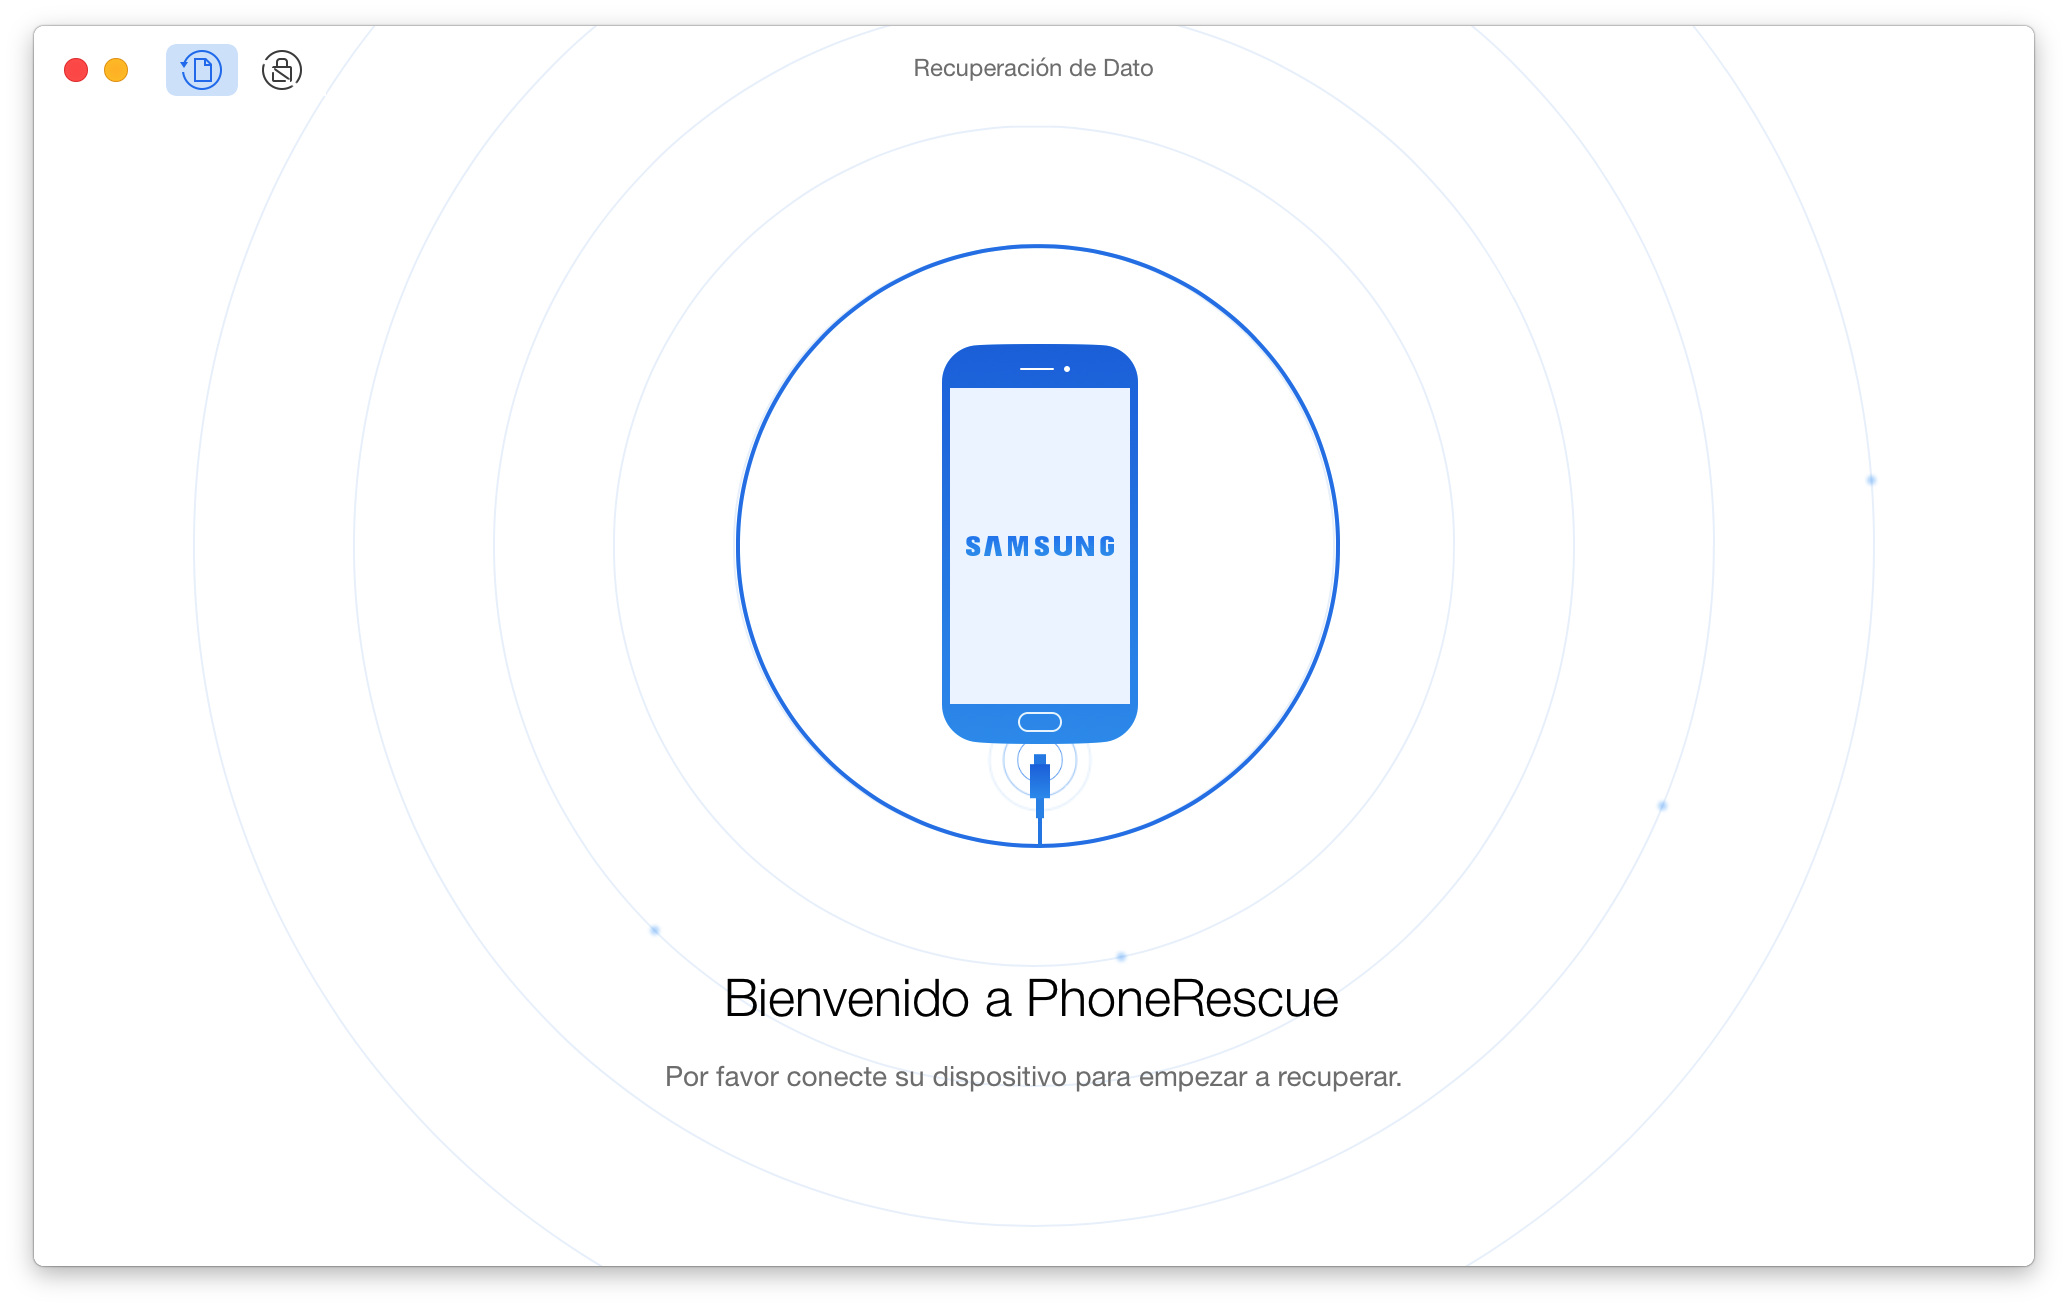 The welcome interface of PhoneRescue for SONY